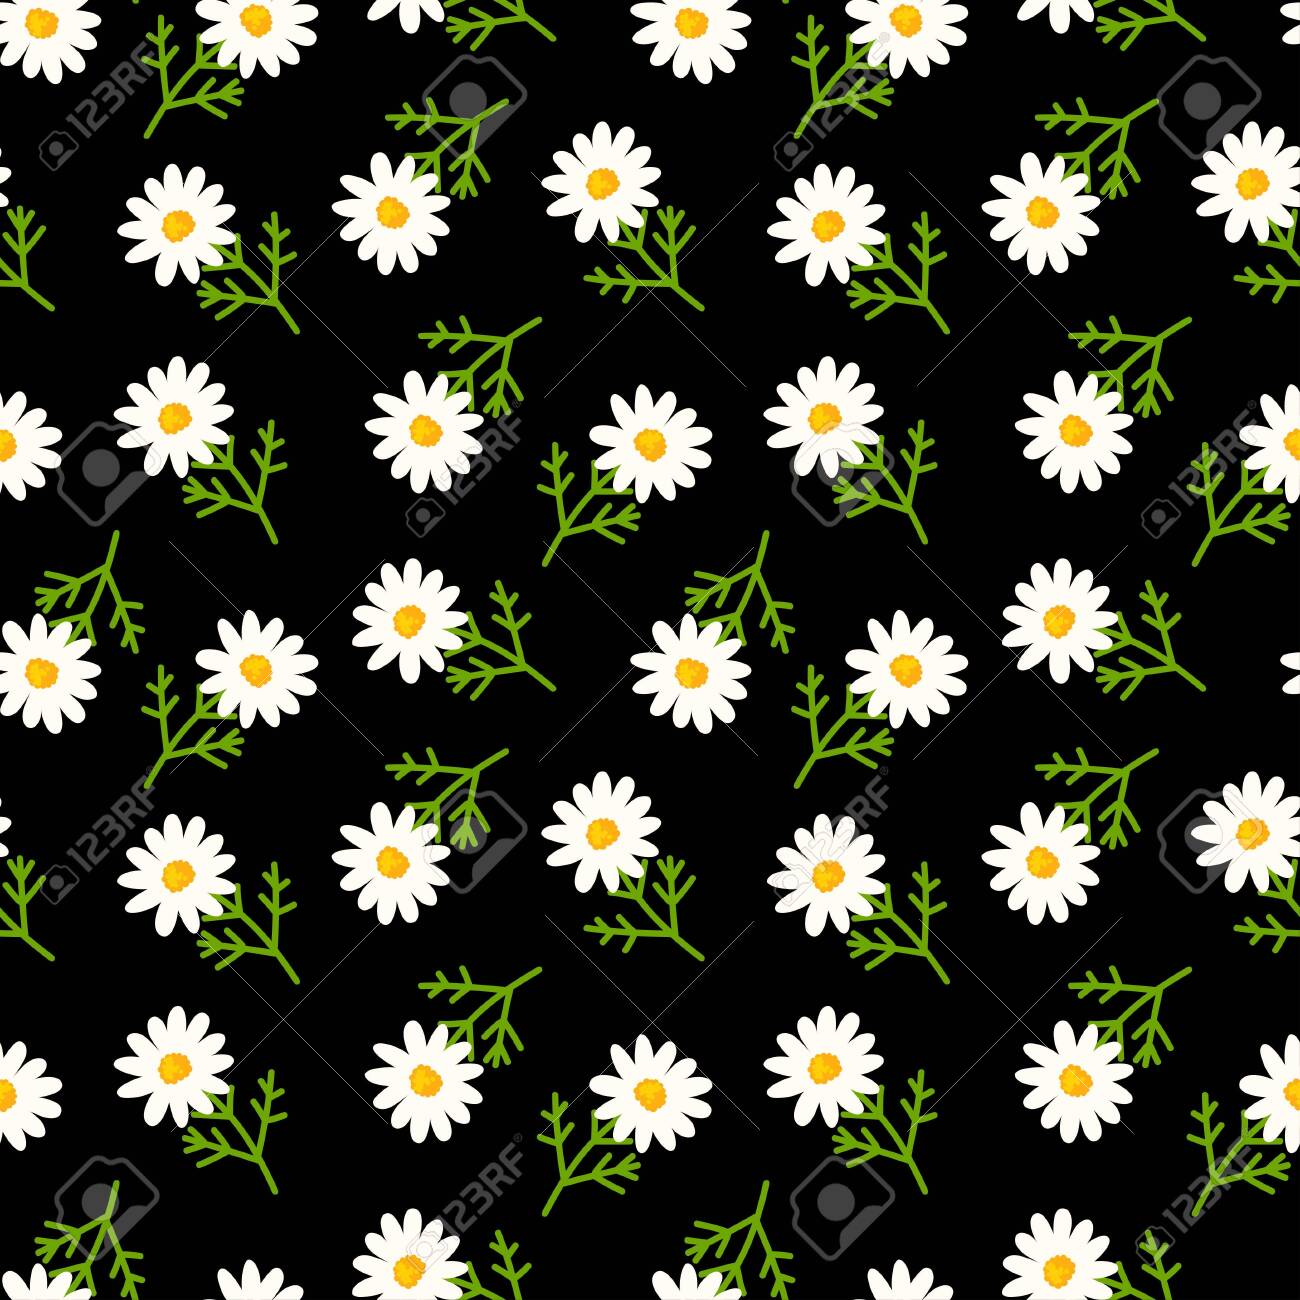 Daisy Seamless Pattern On Black Background Floral Ditsy Print